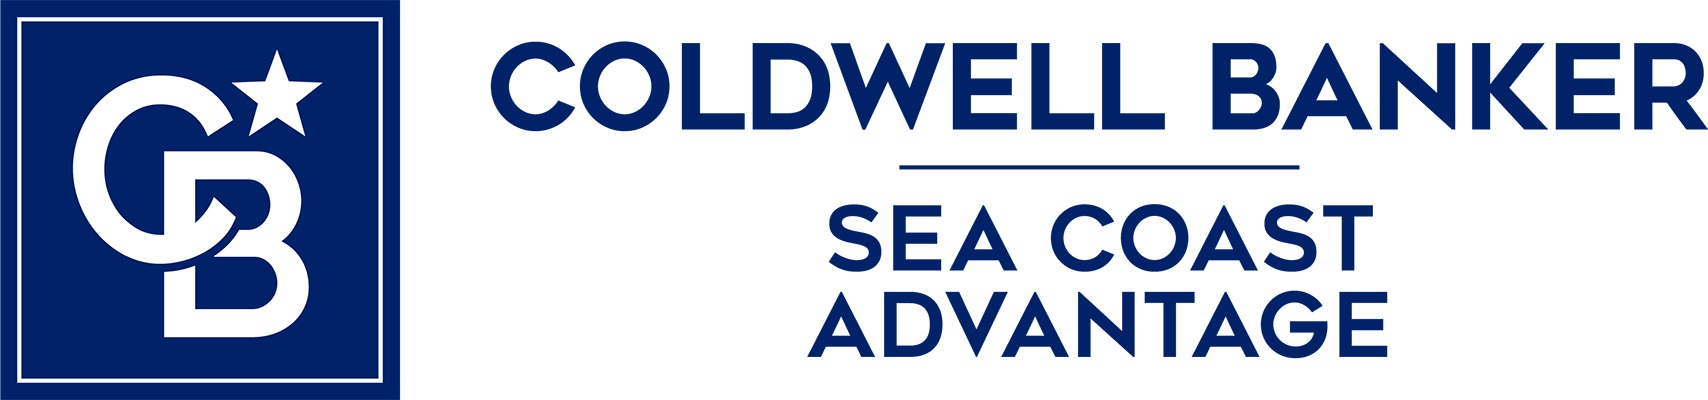 Meleah Deiters - Coldwell Banker Sea Coast Advantage Realty